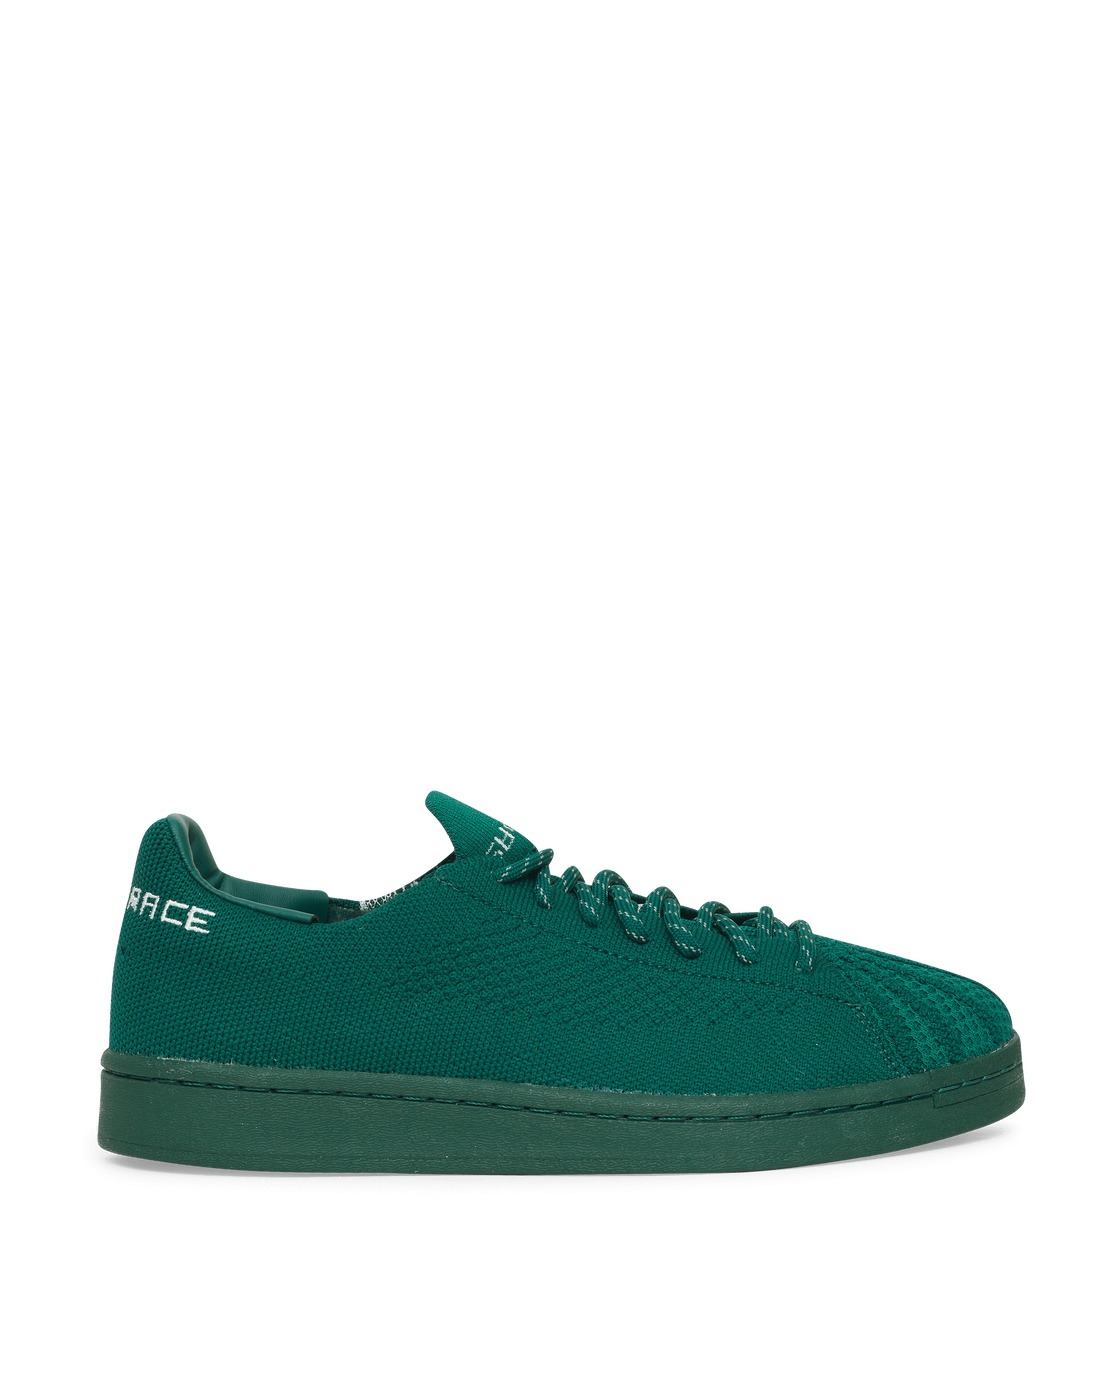 Adidas Originals Pharrell Williams Superstar Pk Sneakers Dark Green